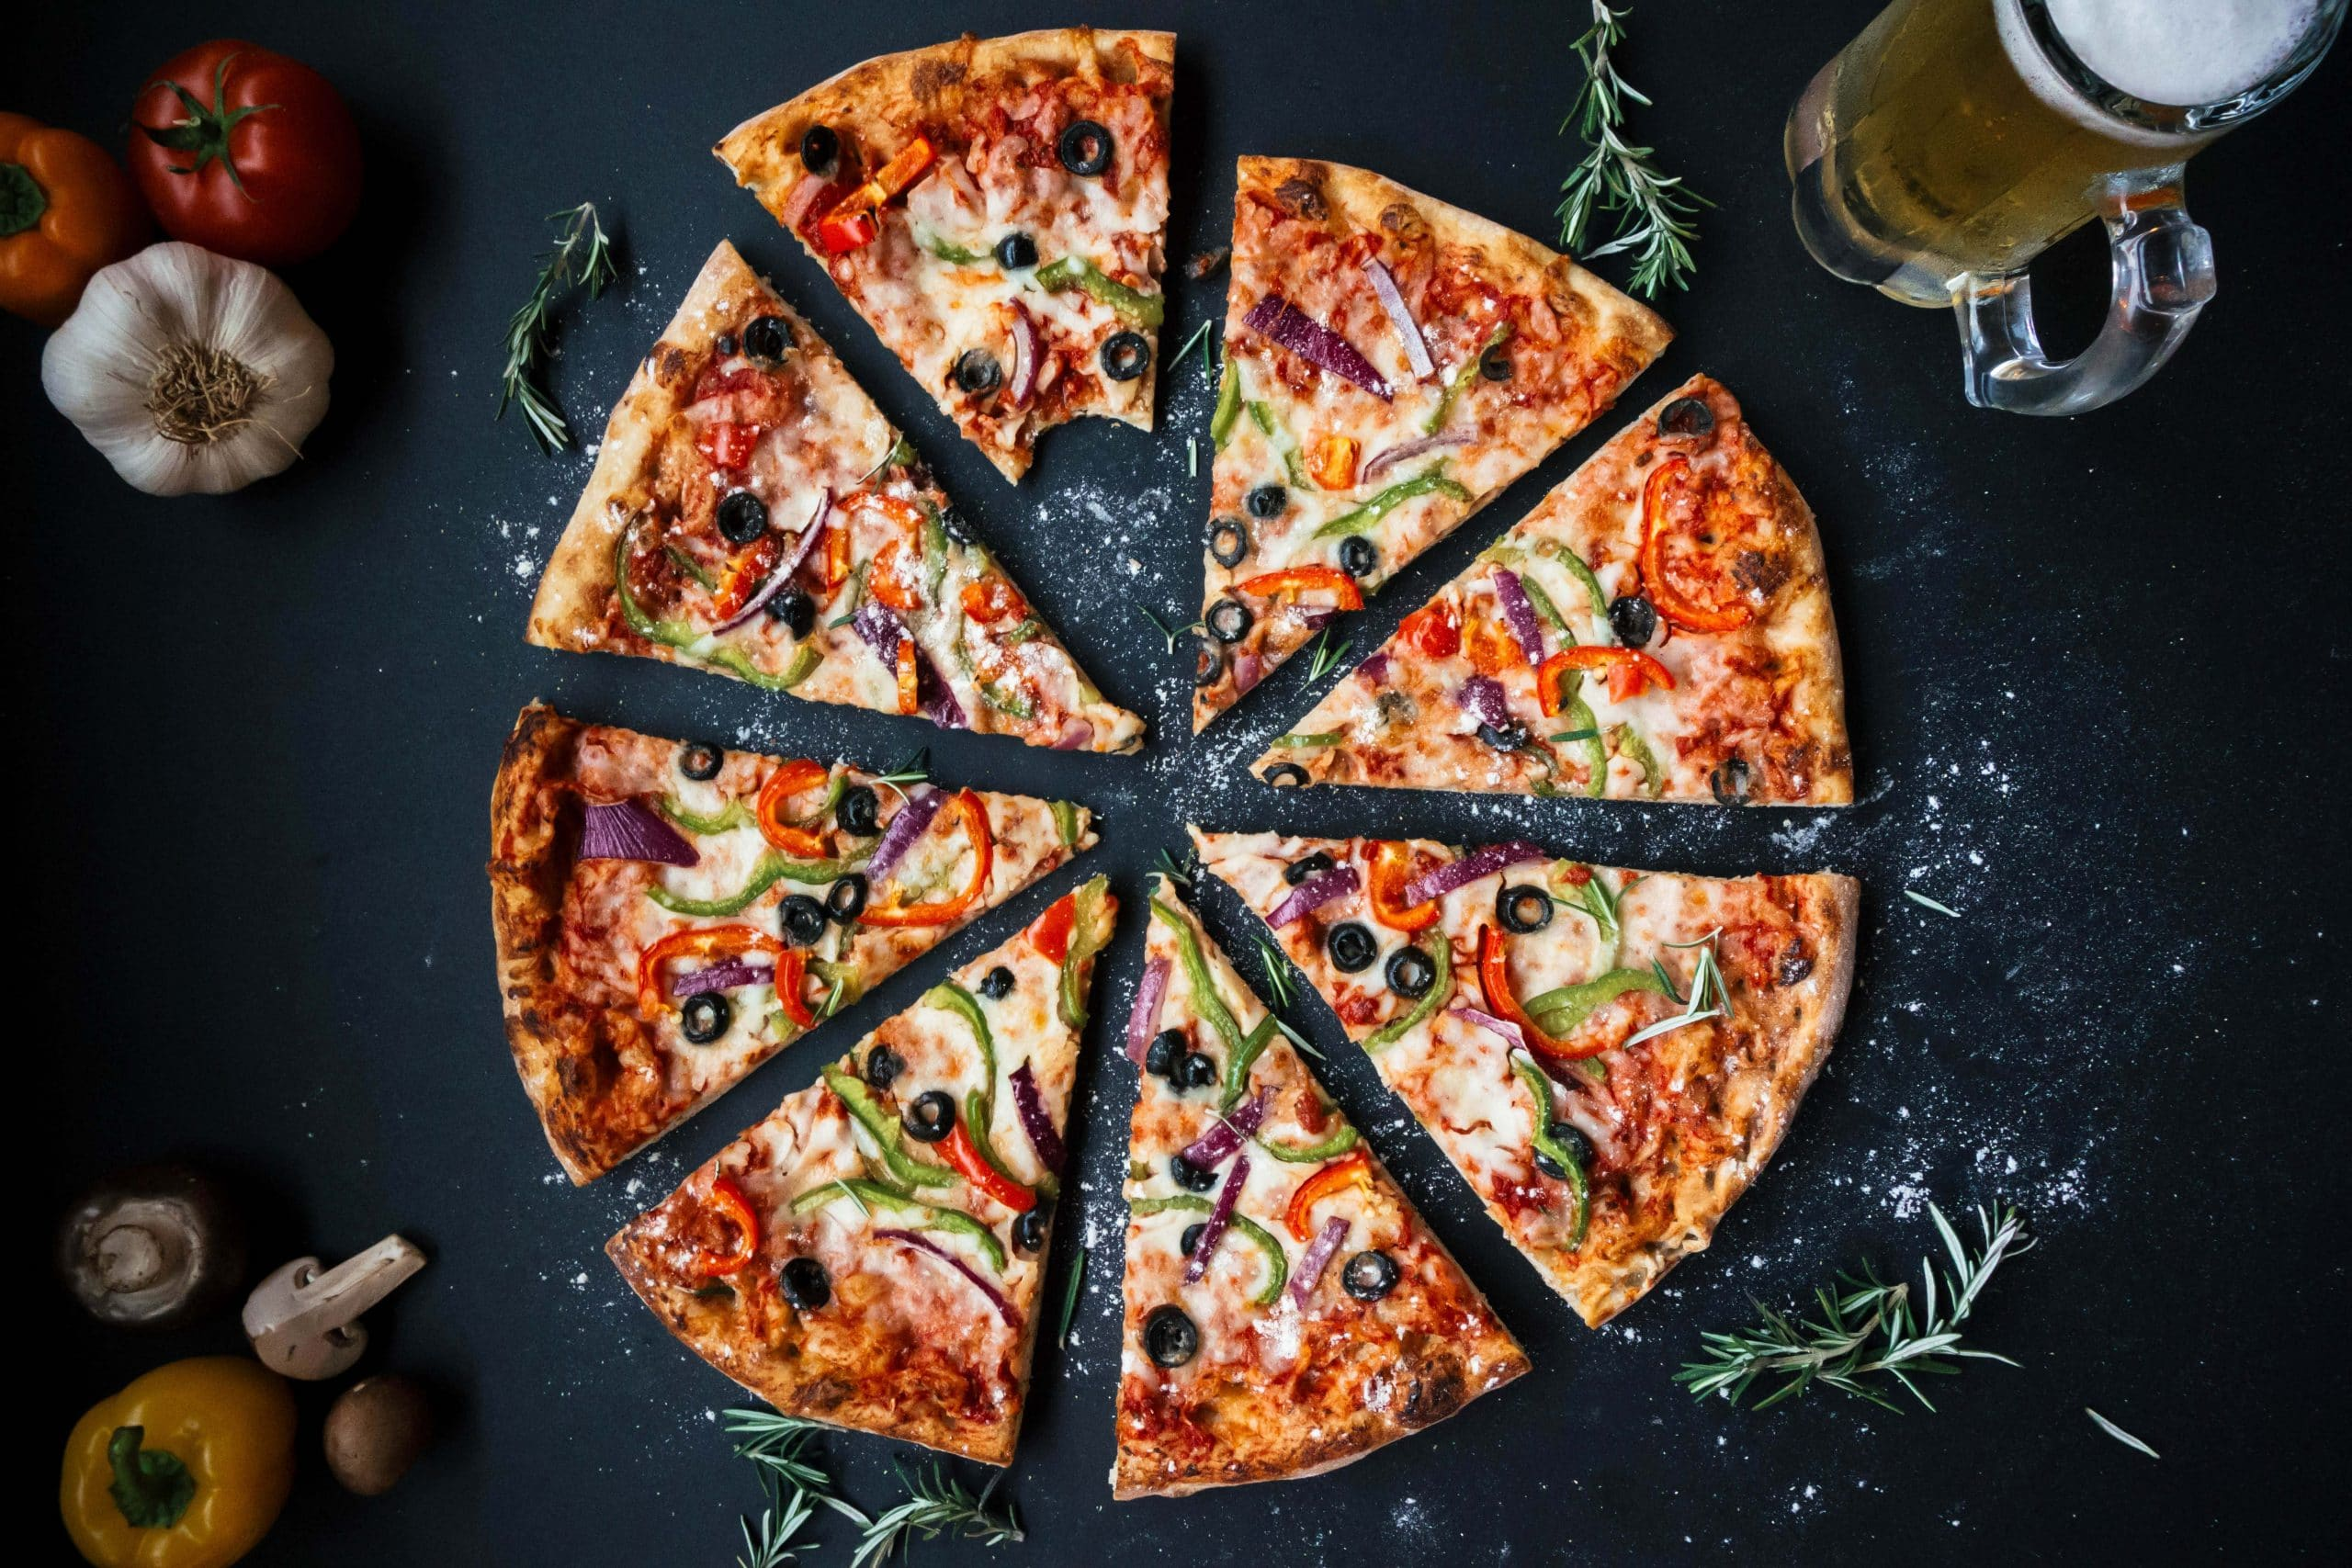 In Singapore There Are At Least 10 Pizza S Around The Country This Is Shown How People Keen To Italian Special Dish